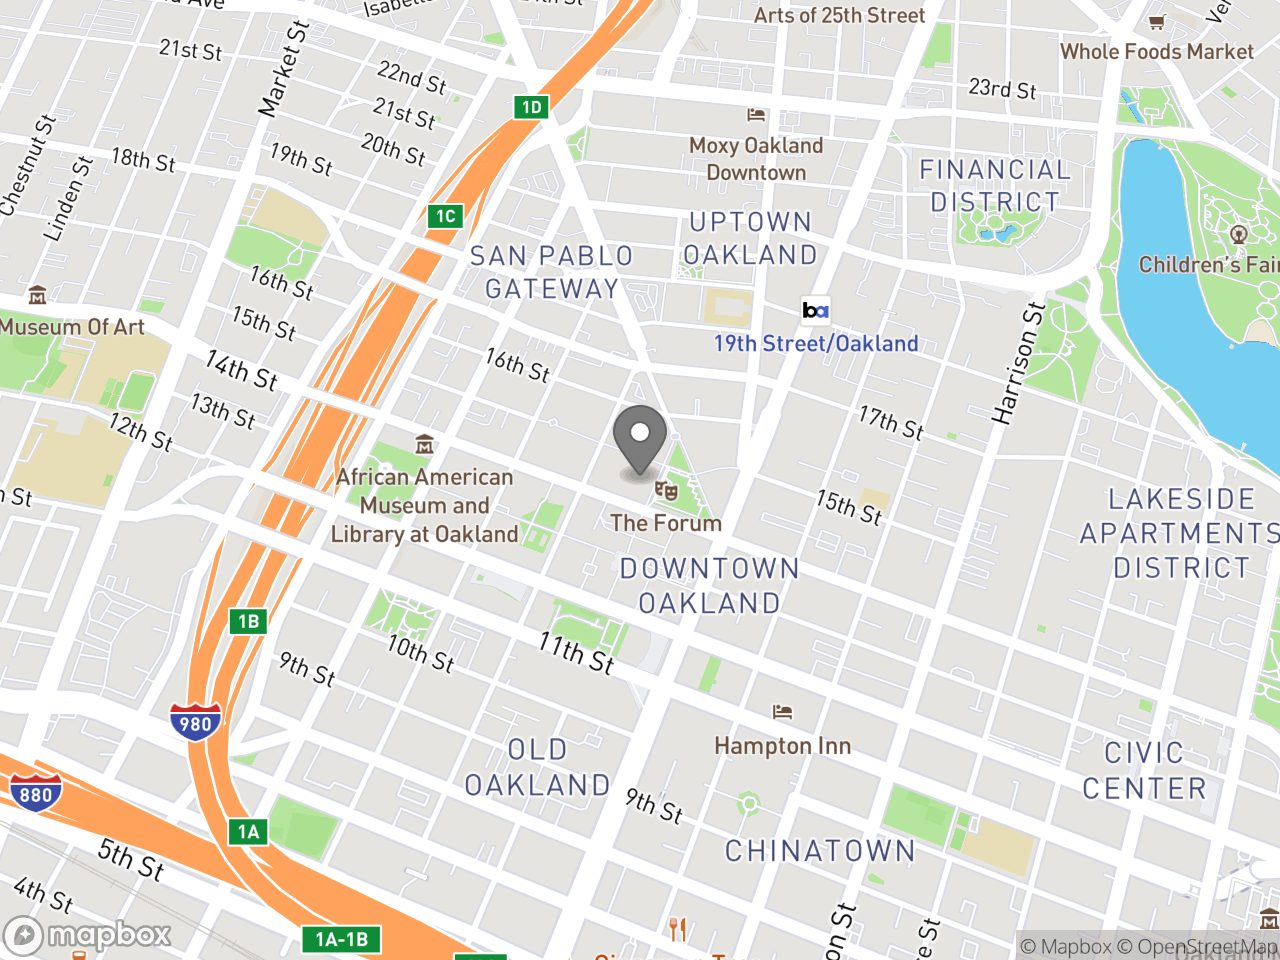 Map location for Safety and Services Oversight Commission Meeting for February 25, 2019, located at 1 Frank H Ogawa Plaza in Oakland, CA 94612